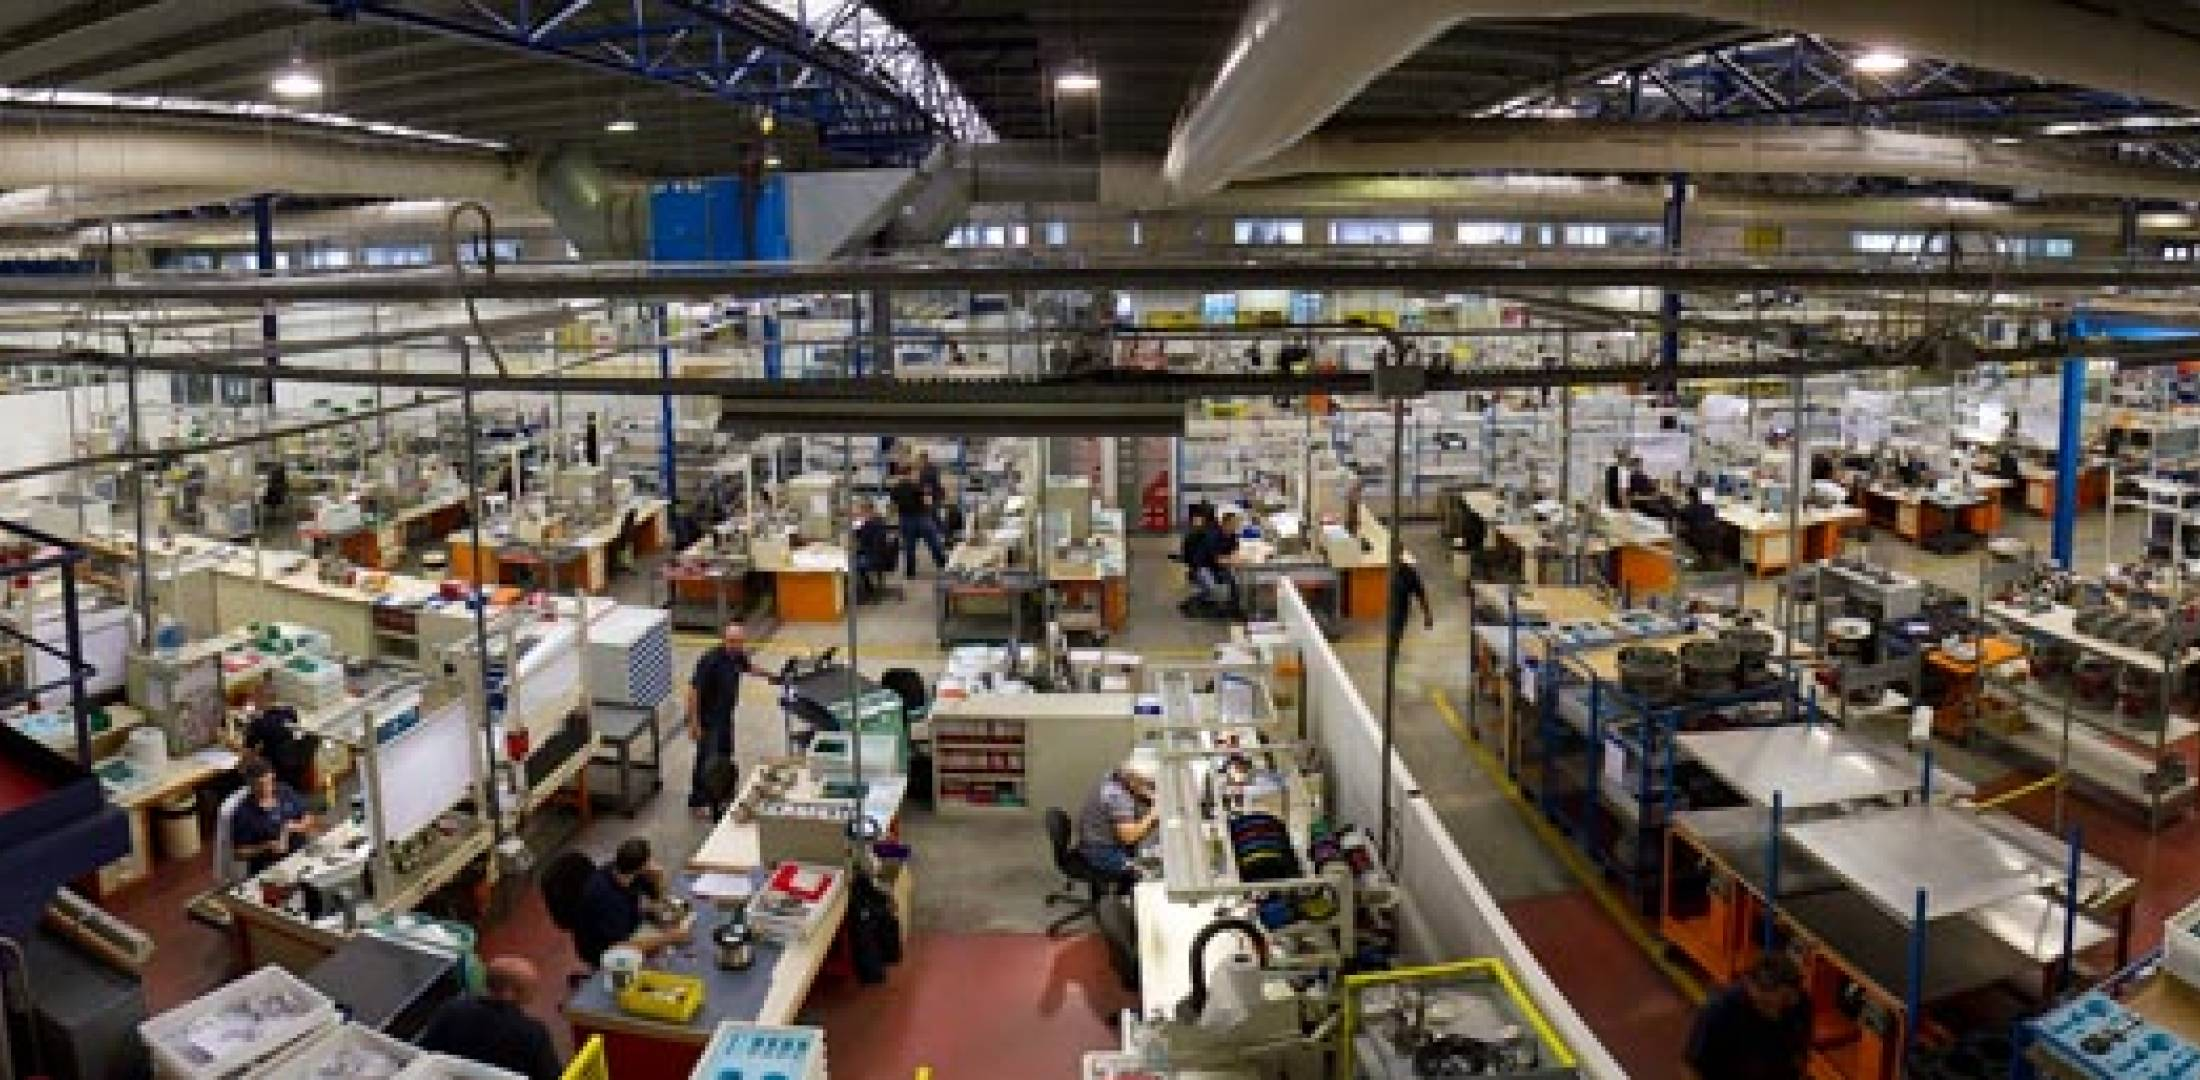 Liebbherr's aerospace activities center around an air systems manufacturing faci